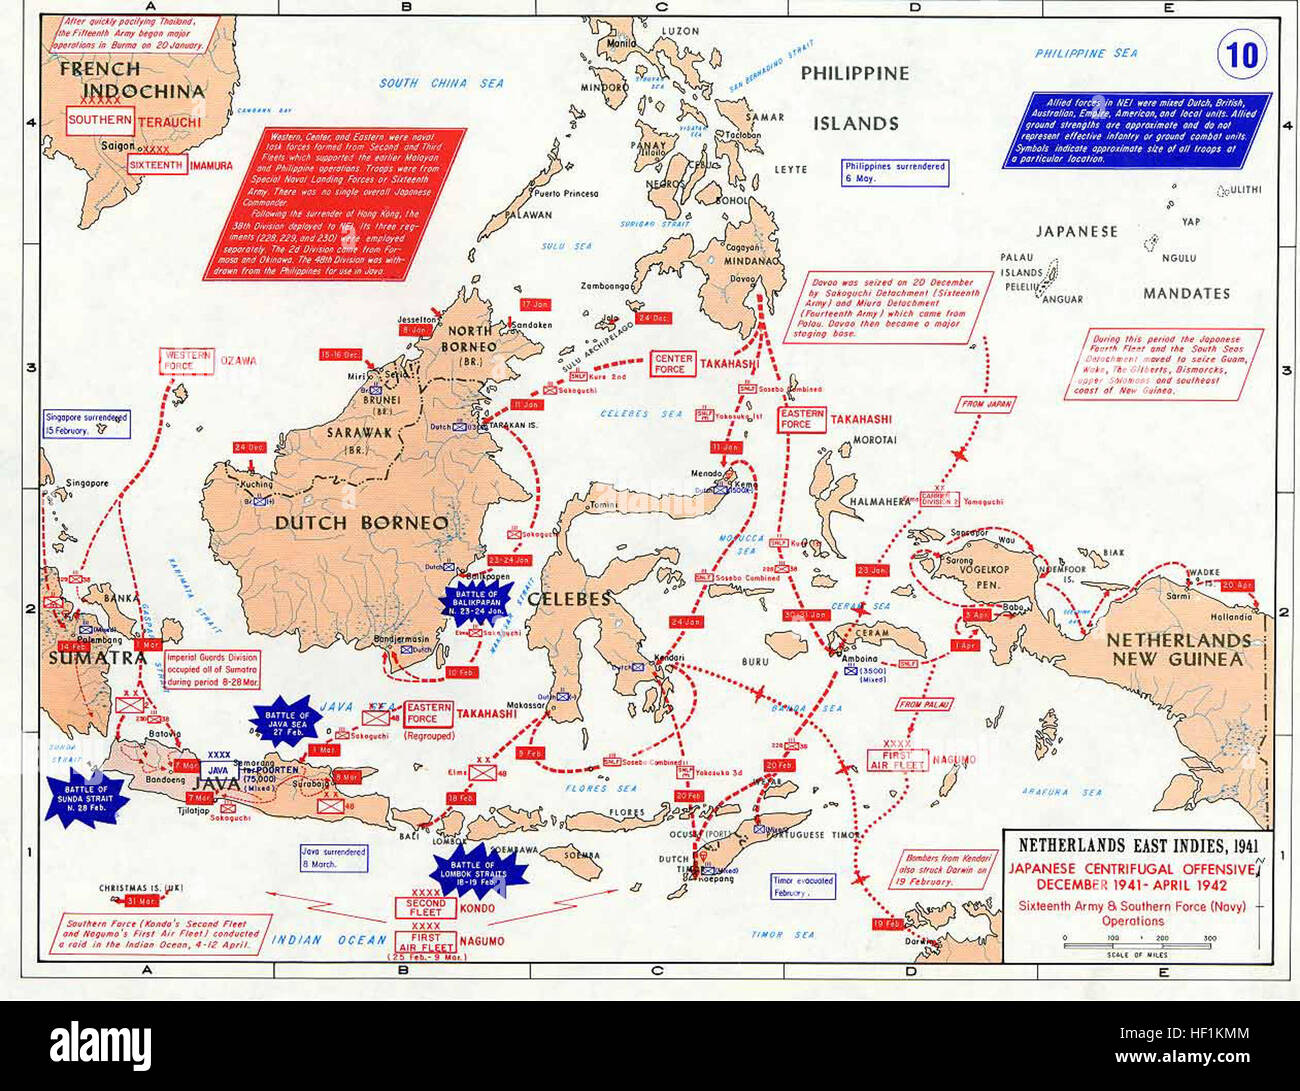 Pacific War - Dutch East Indies 1941-42 - Map Stock Photo